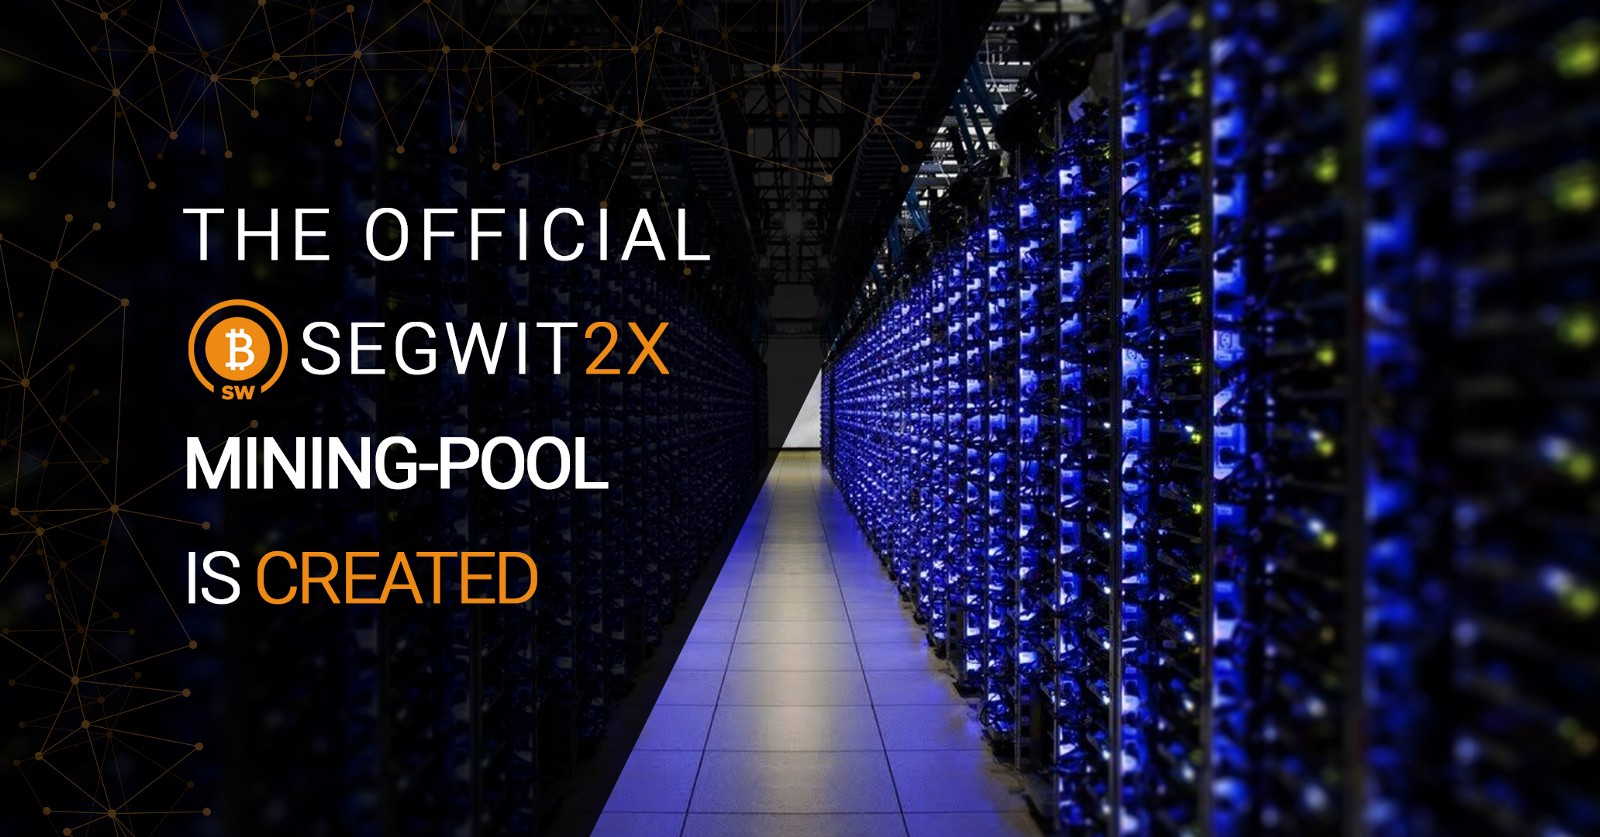 The official segwit2x mining pool created segwit2x medium since we cant guarantee the reliability of these pools we organized the official segwit2x mining pool ccuart Choice Image